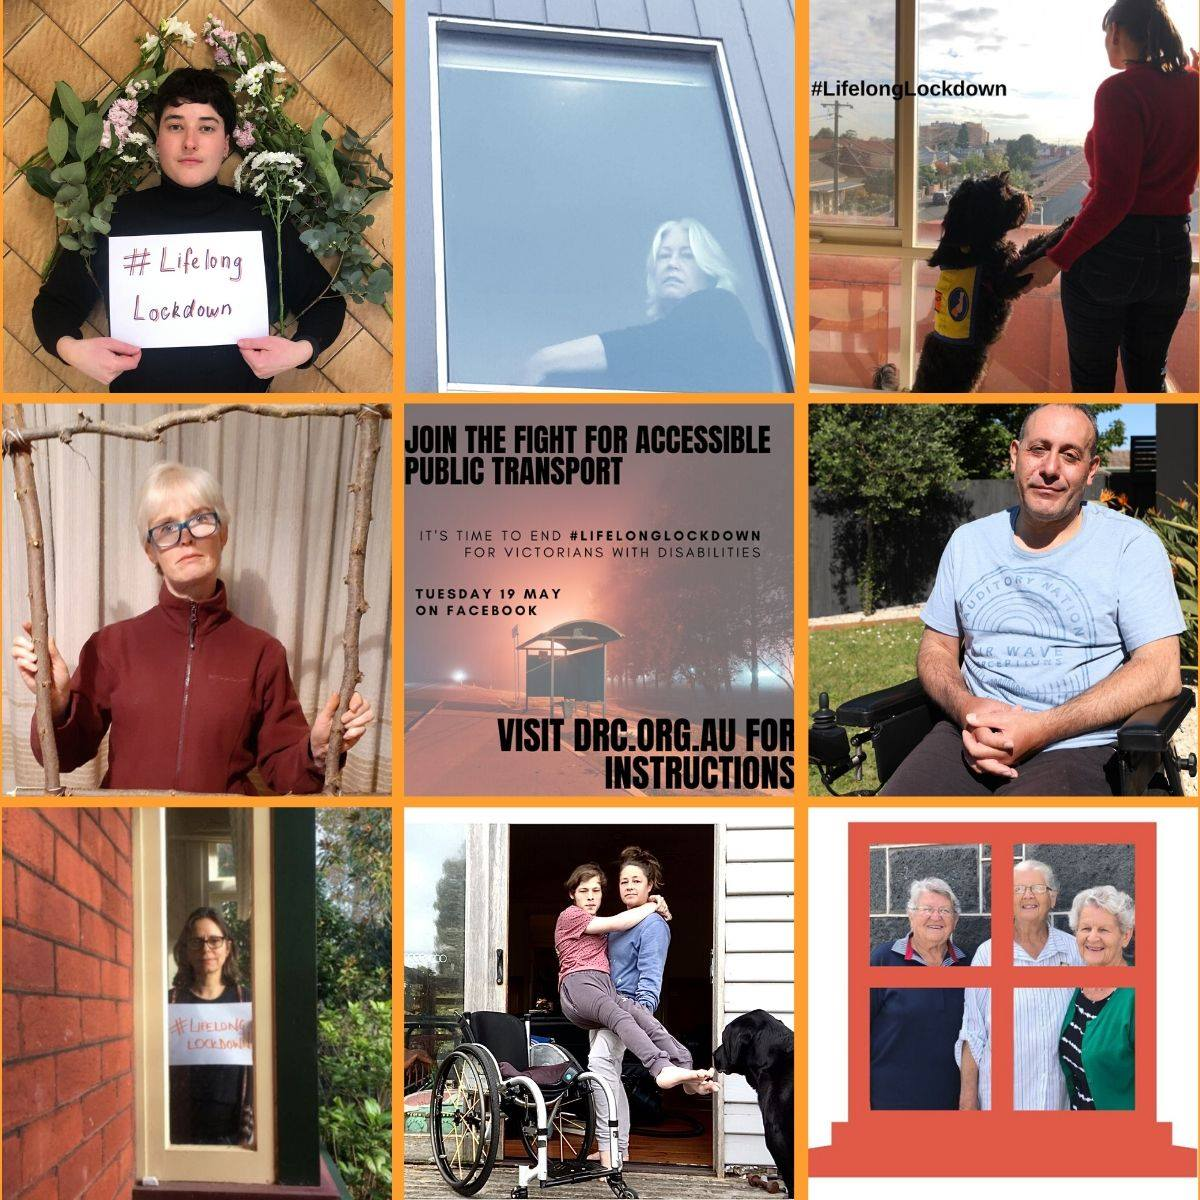 Several images of people holding up signs saying #LifelongLockdown